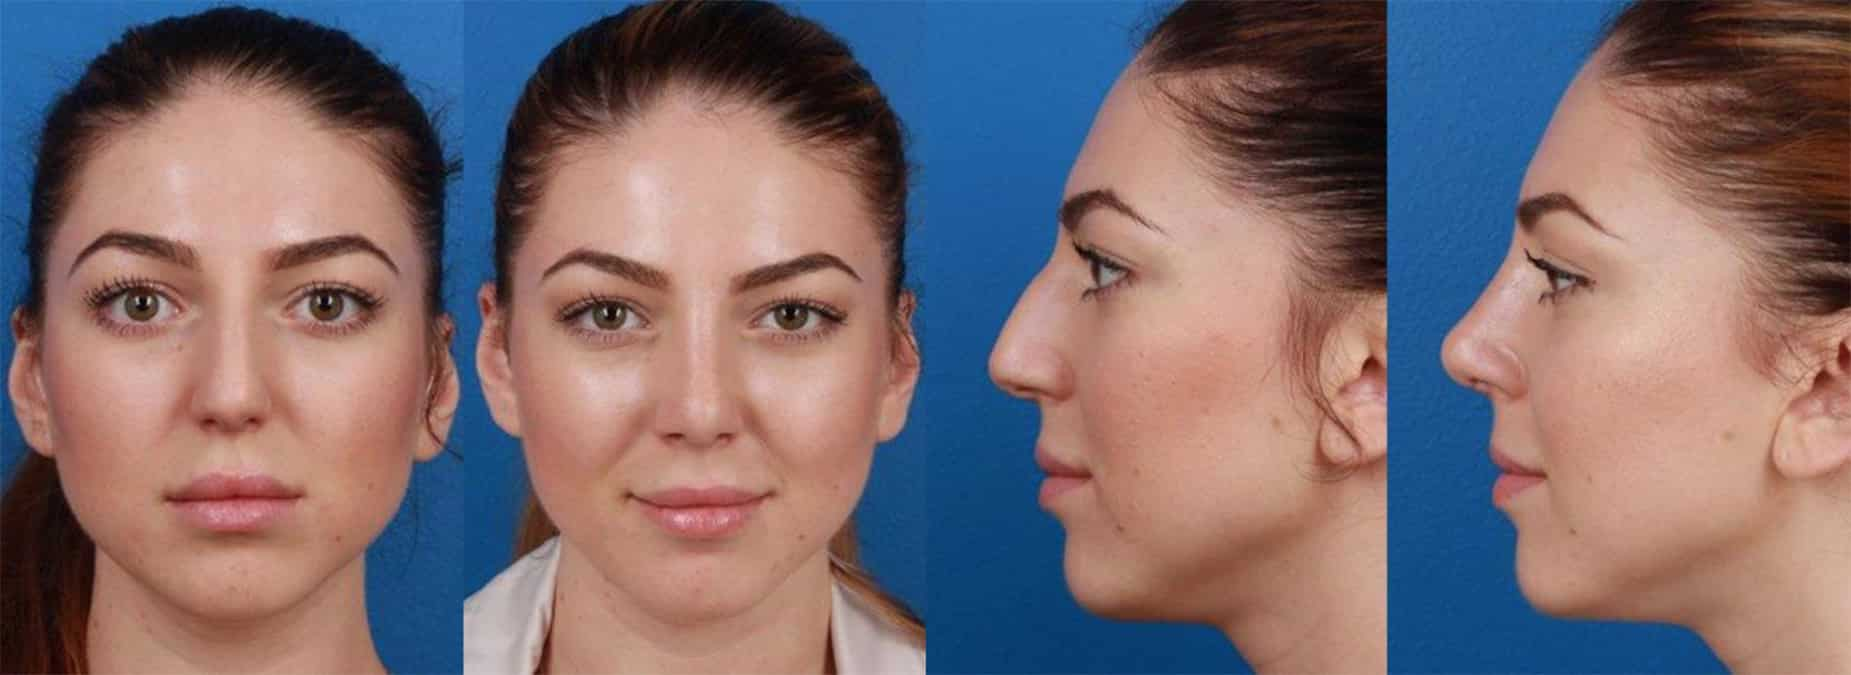 New York female patient before and after image for a rhinoplasty to remove the nasal hump